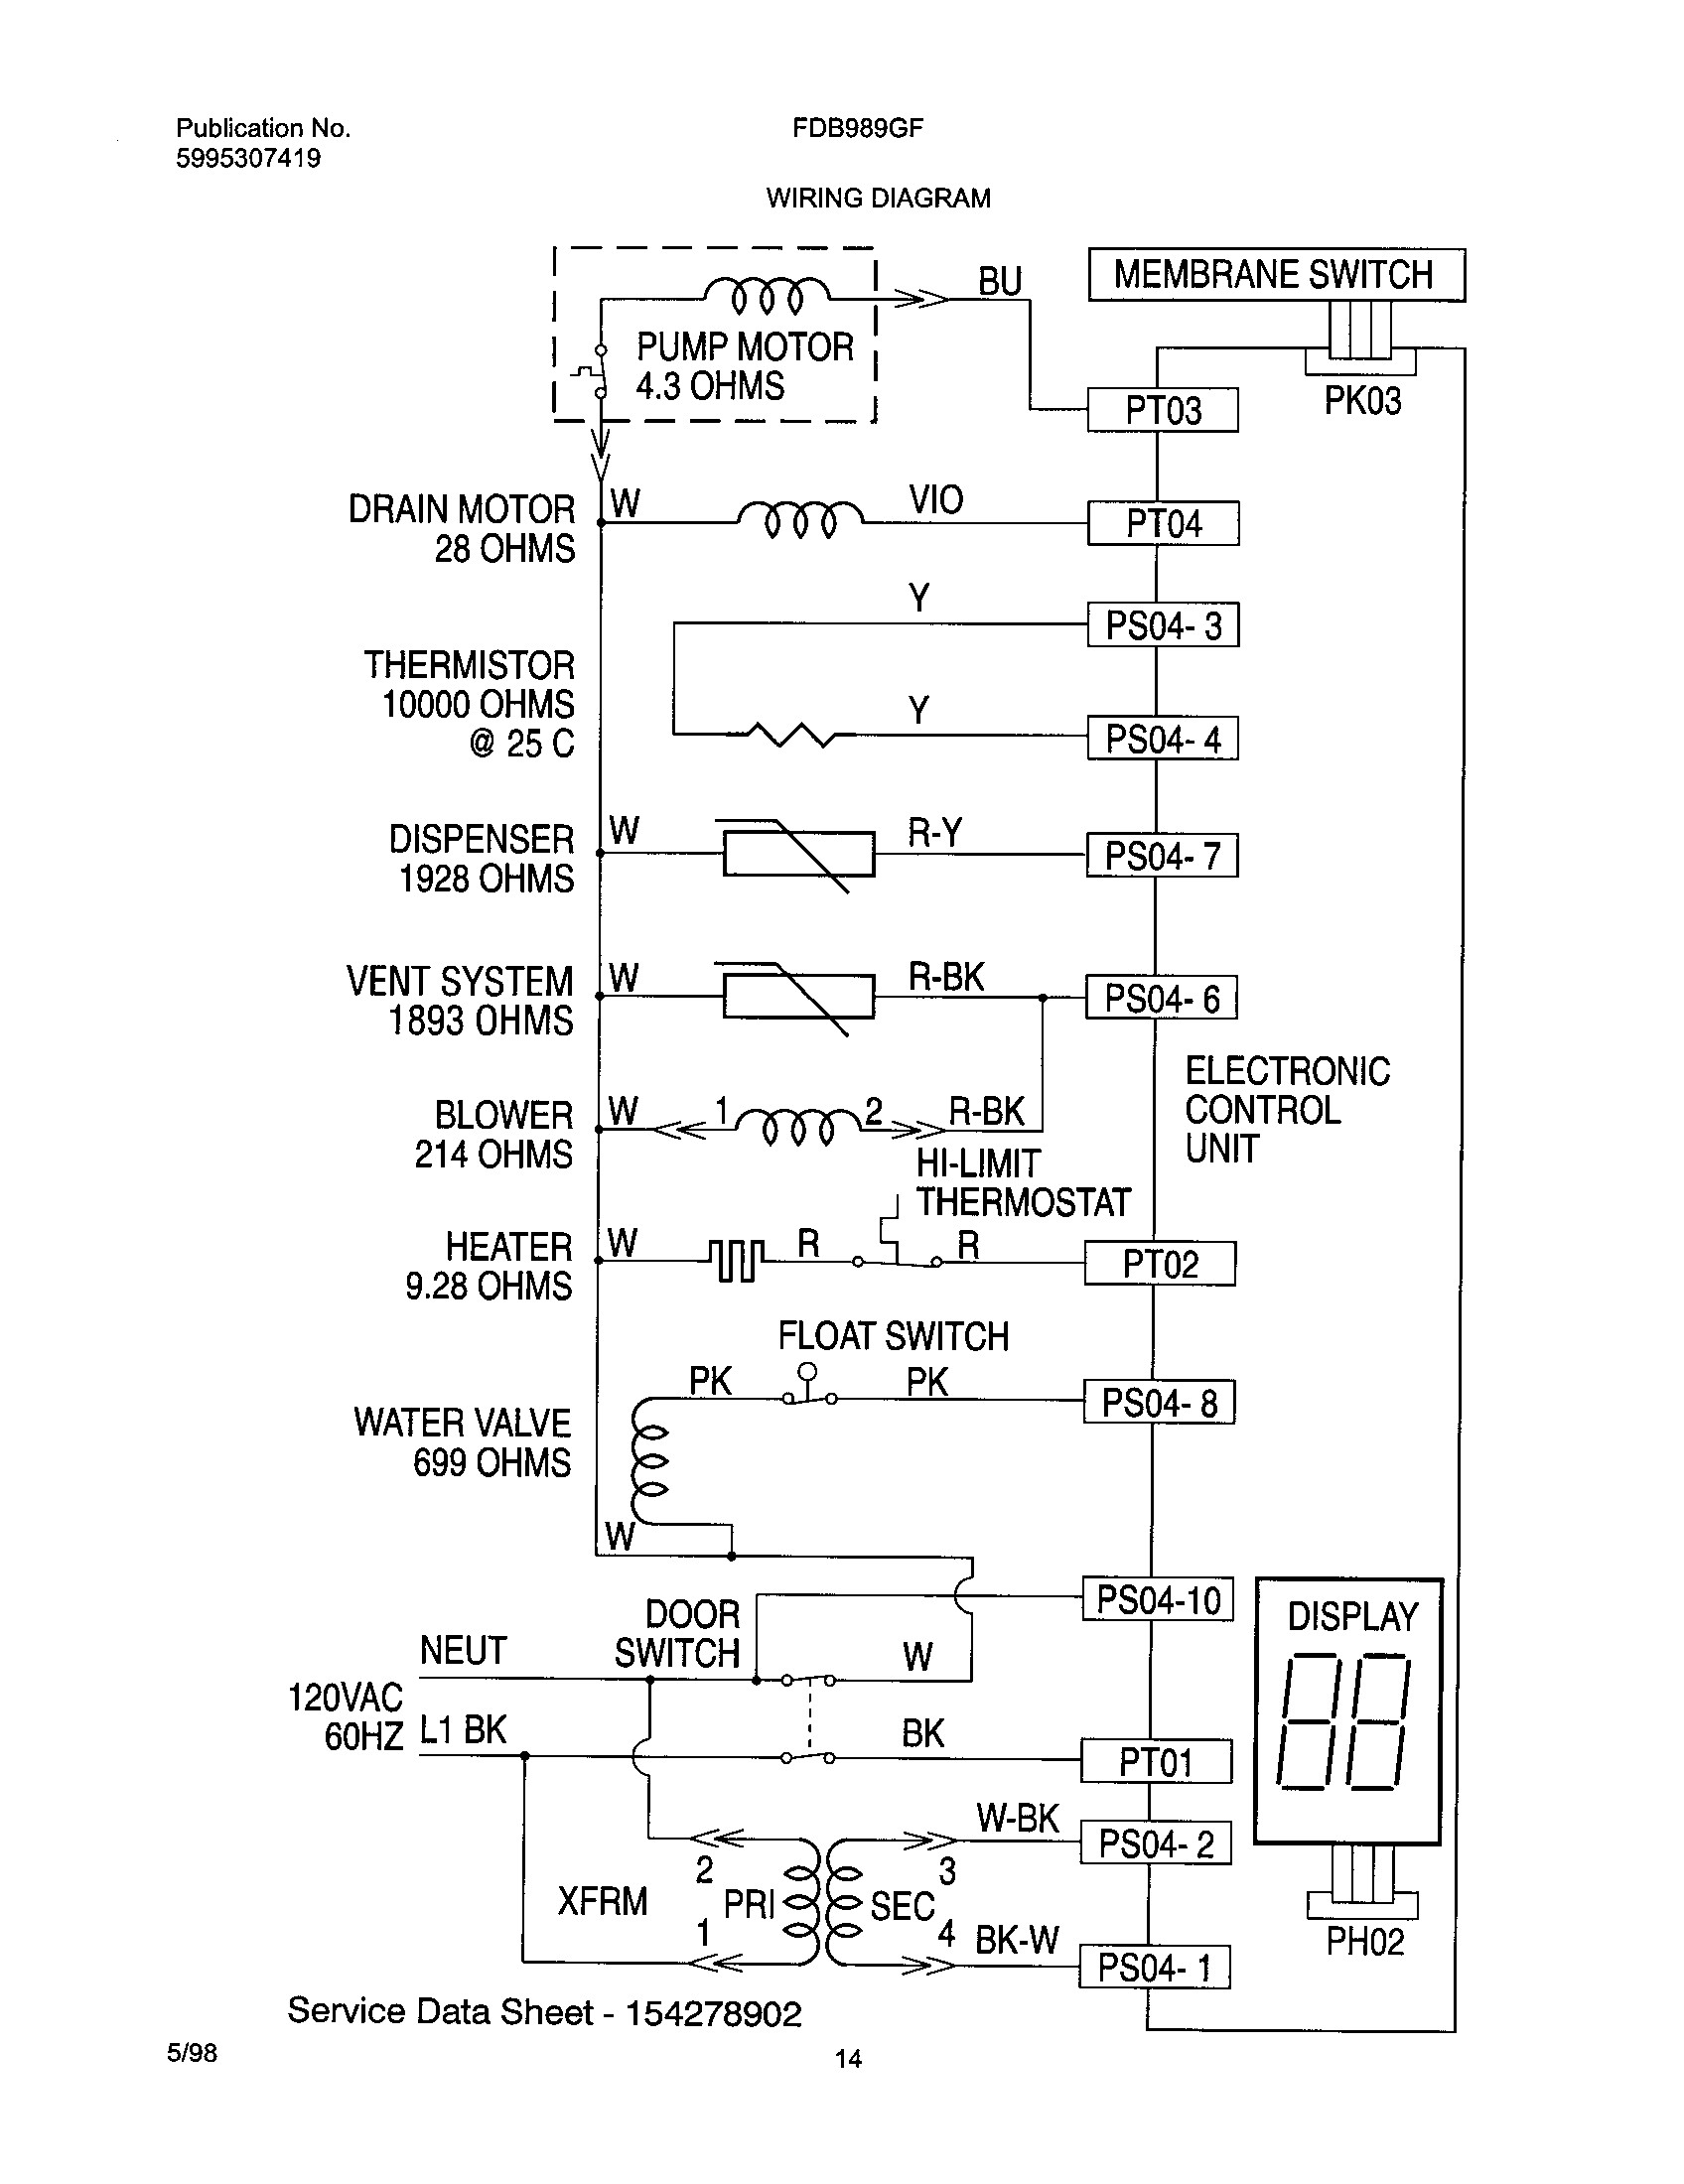 Frigidaire Dishwasher Parts Diagram Wiring To For B2network